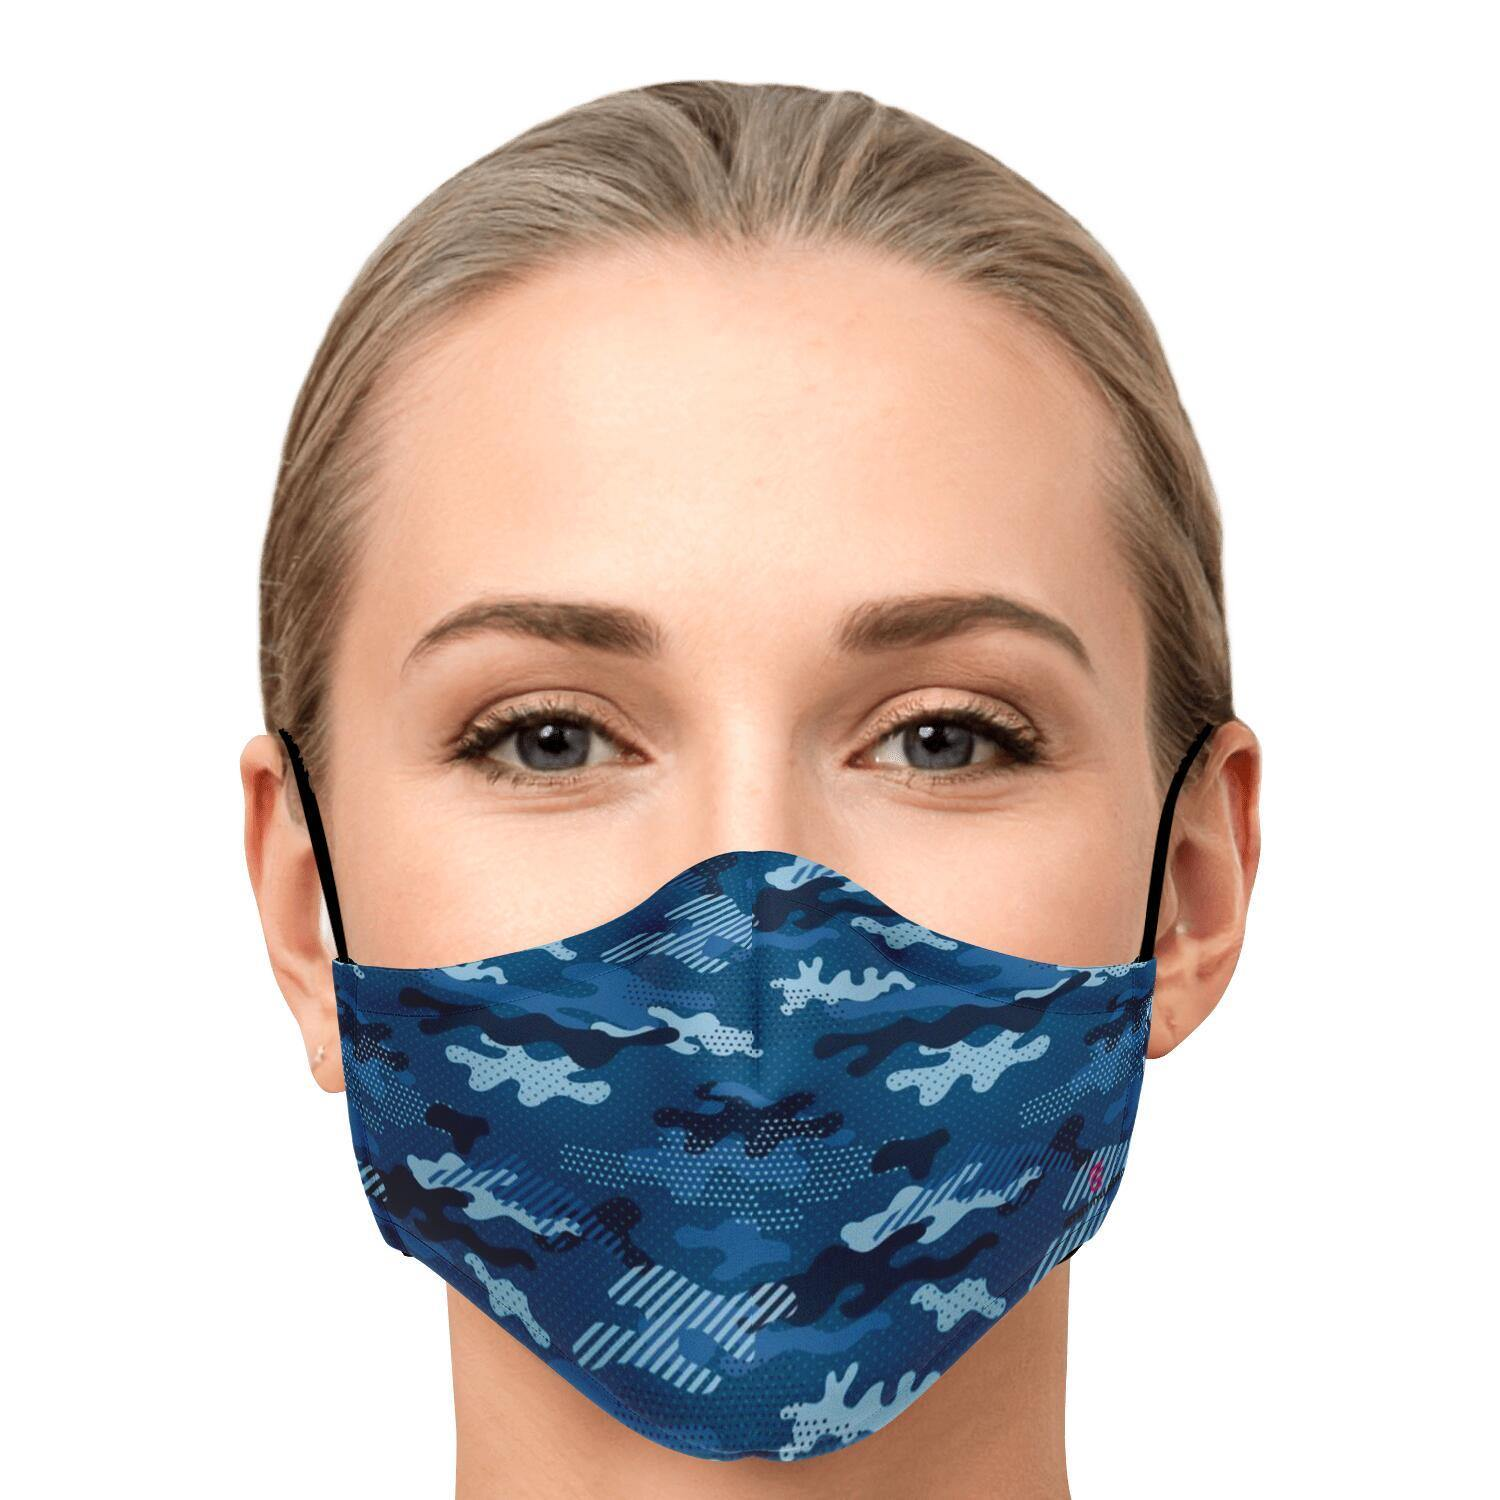 Modern Blue Camouflage Fashion Face Mask With PM 2.5 Carbon Filter - Get Set Style Metro